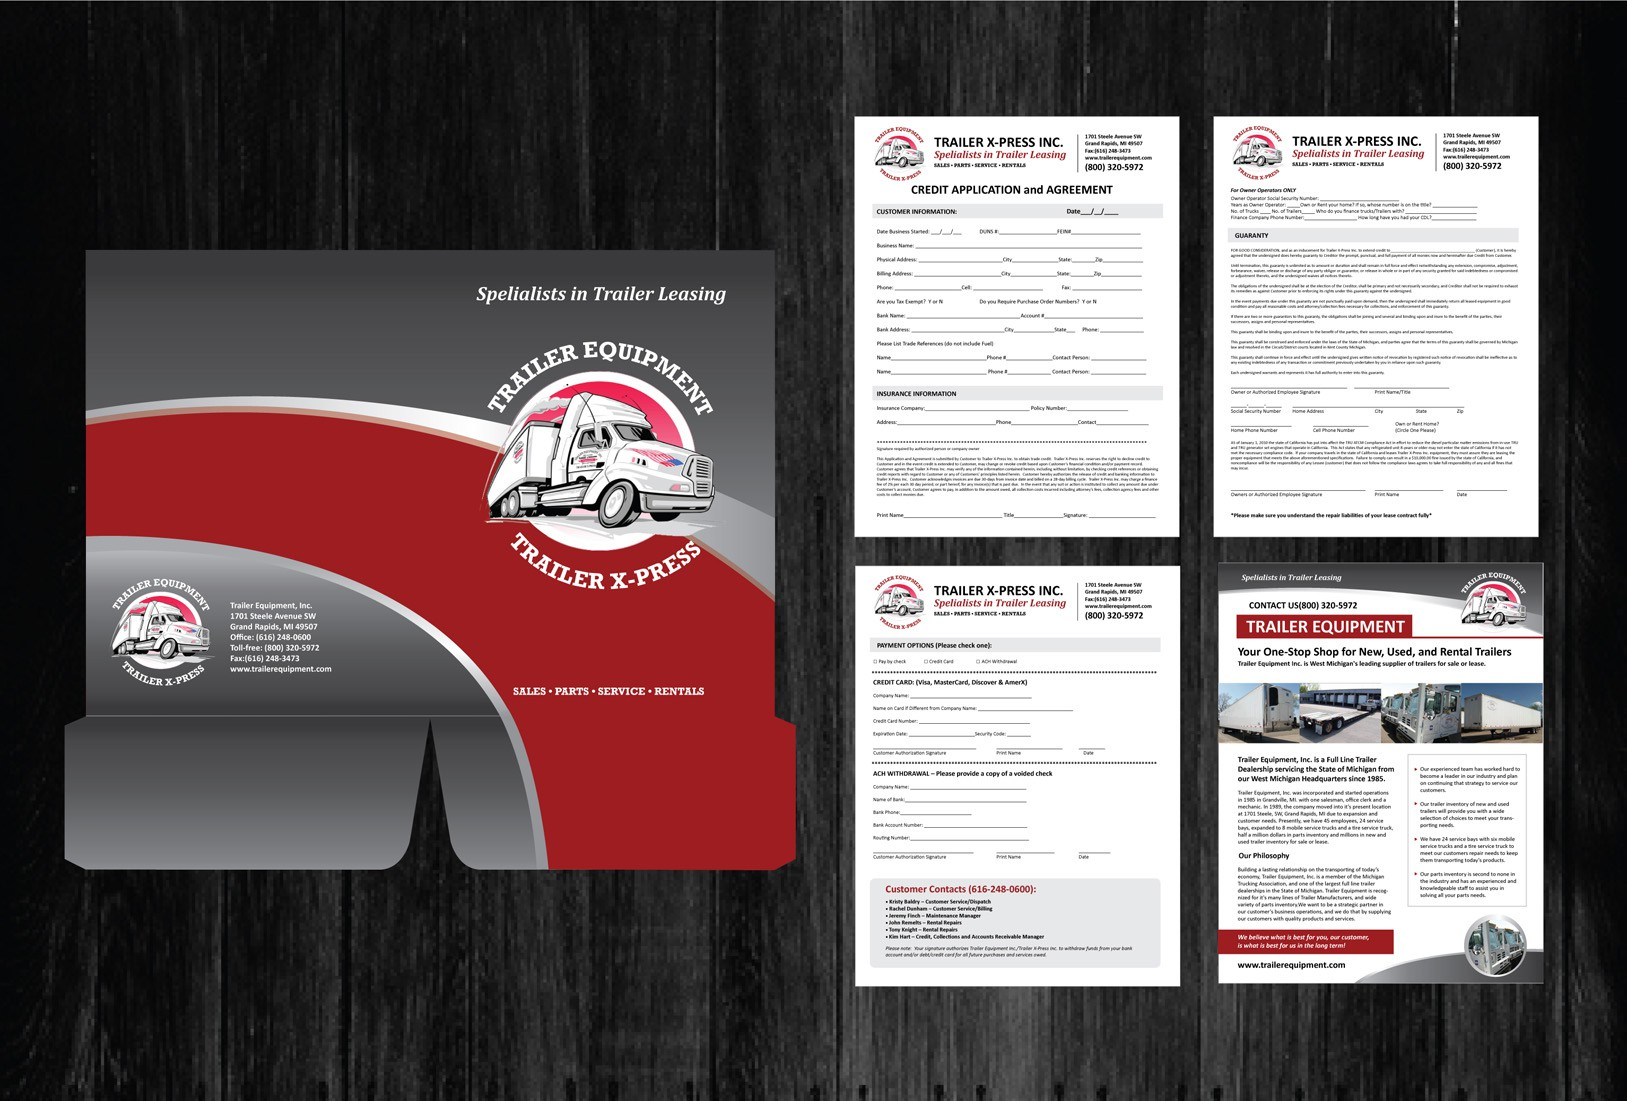 Create the next Print Handout for Trailer X-Press and their new/potential customers!